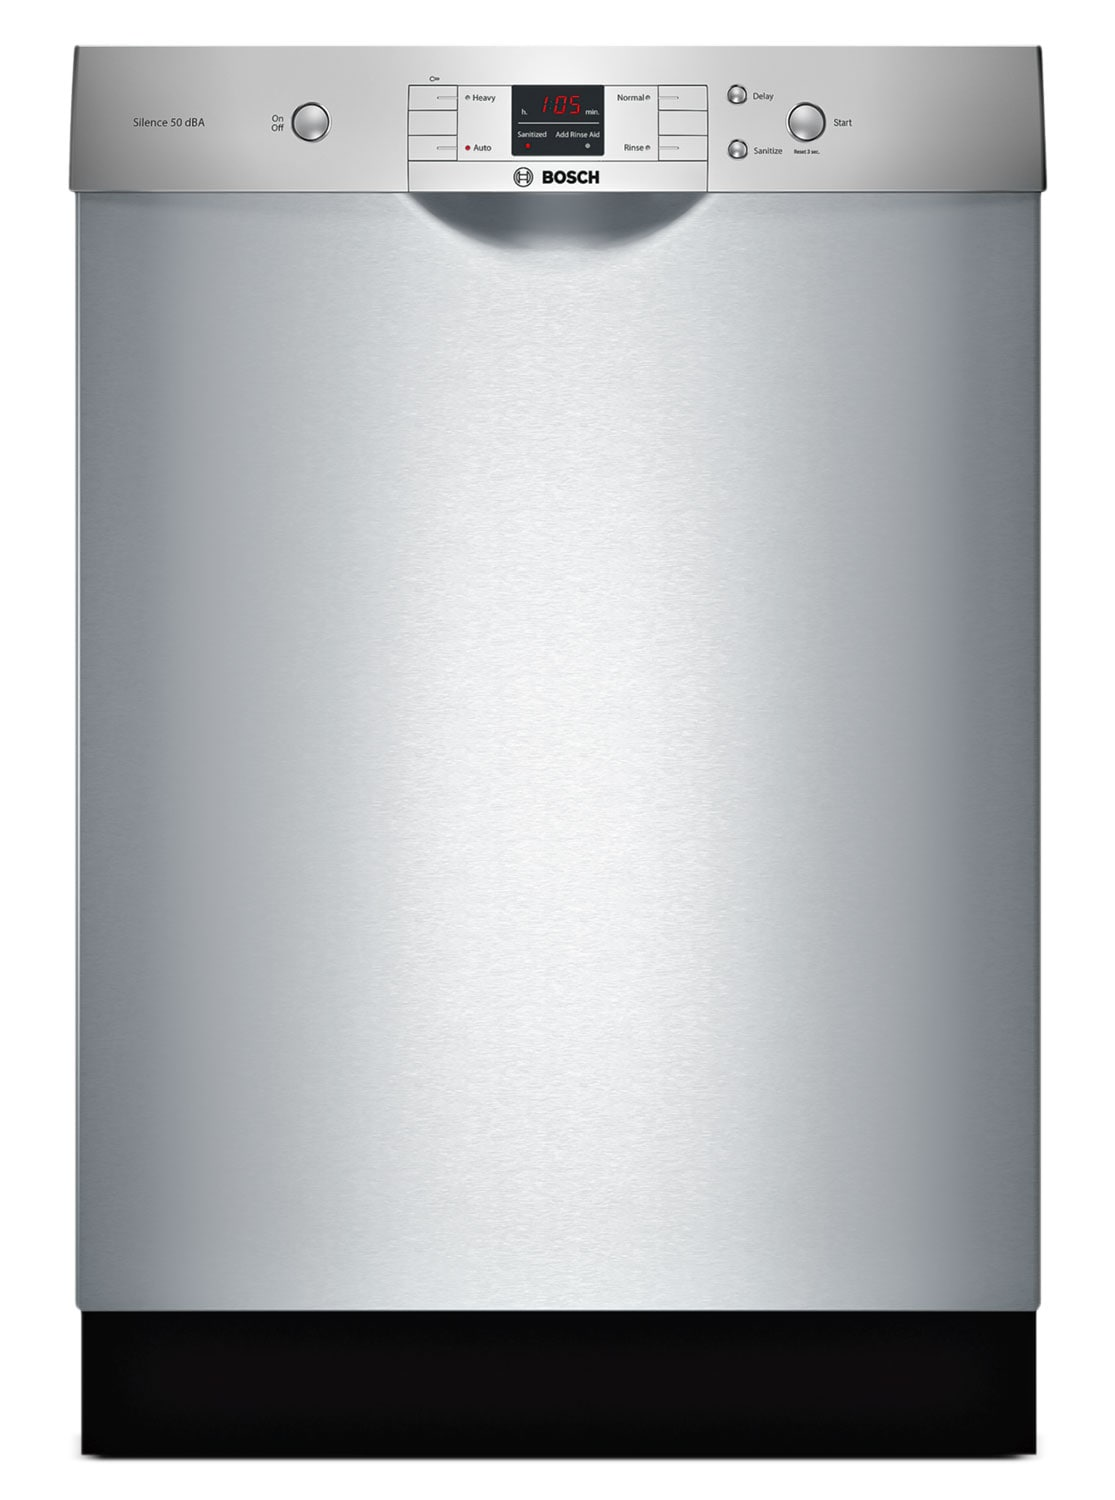 Clean-Up - Bosch 300 Series Built-In Dishwasher – Stainless Steel